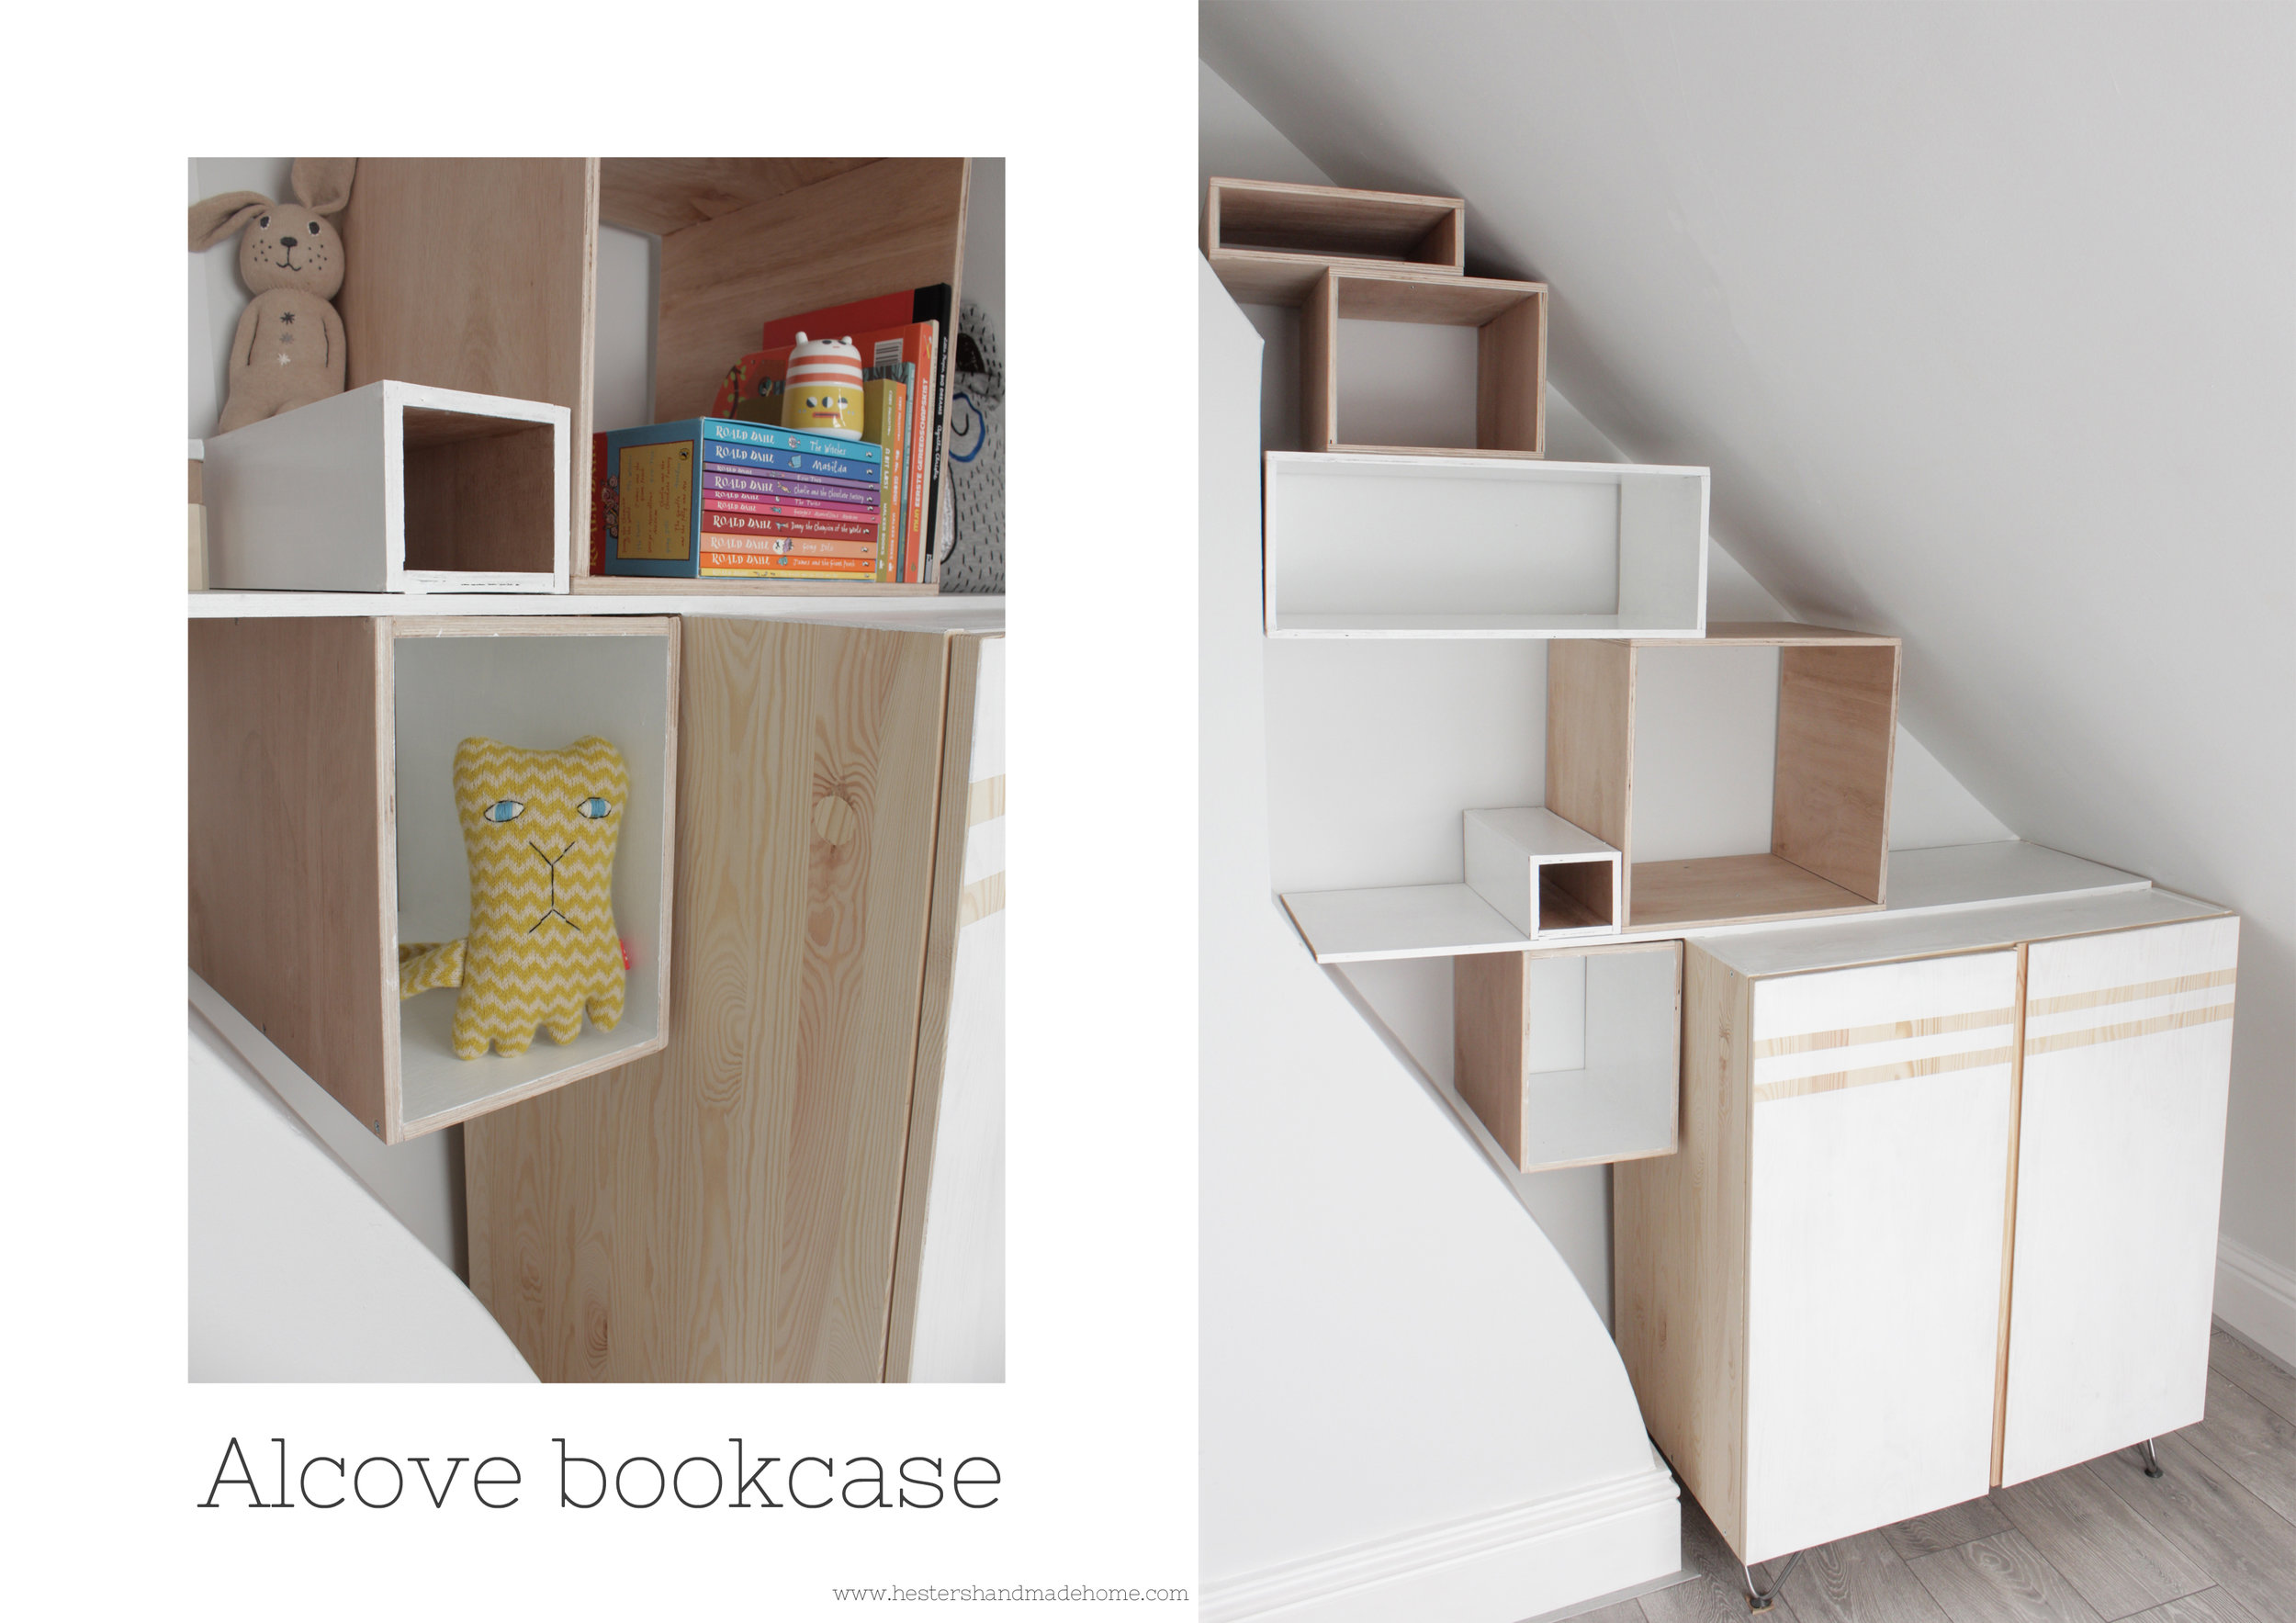 Modular bookcase build in a weird shaped nook by www.hestershandmadehome.com